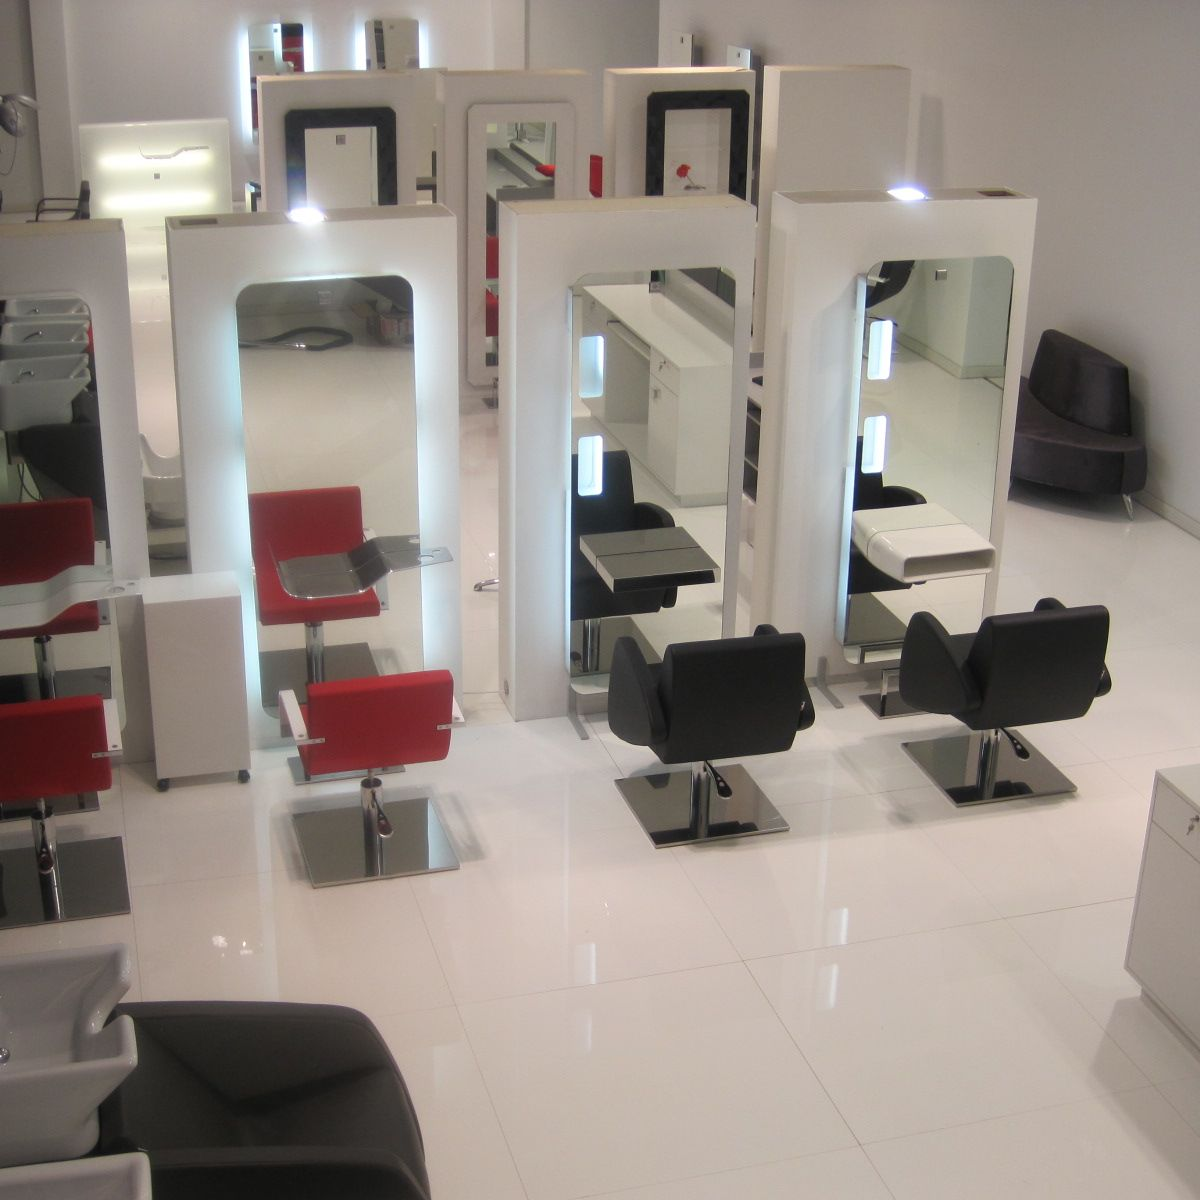 Nelson mobilier salon furniture salon design hair for Mobilier salon design